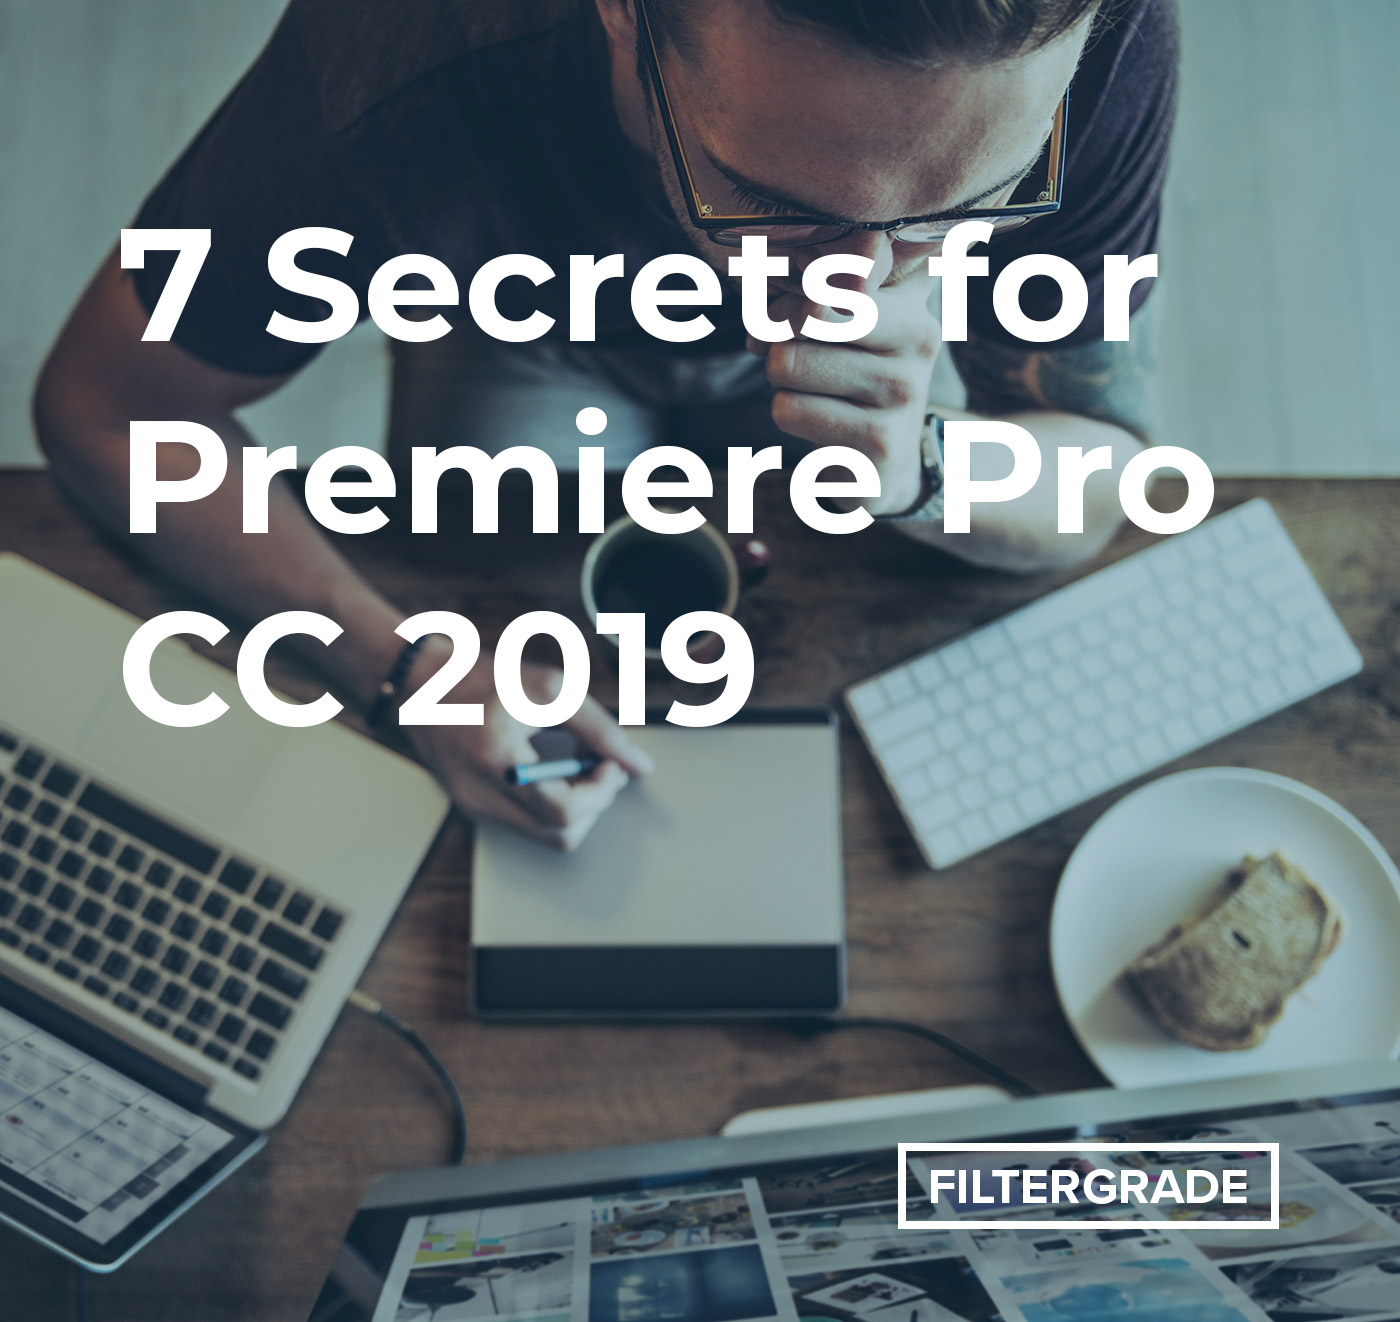 7 Secrets for Premiere Pro CC 2019